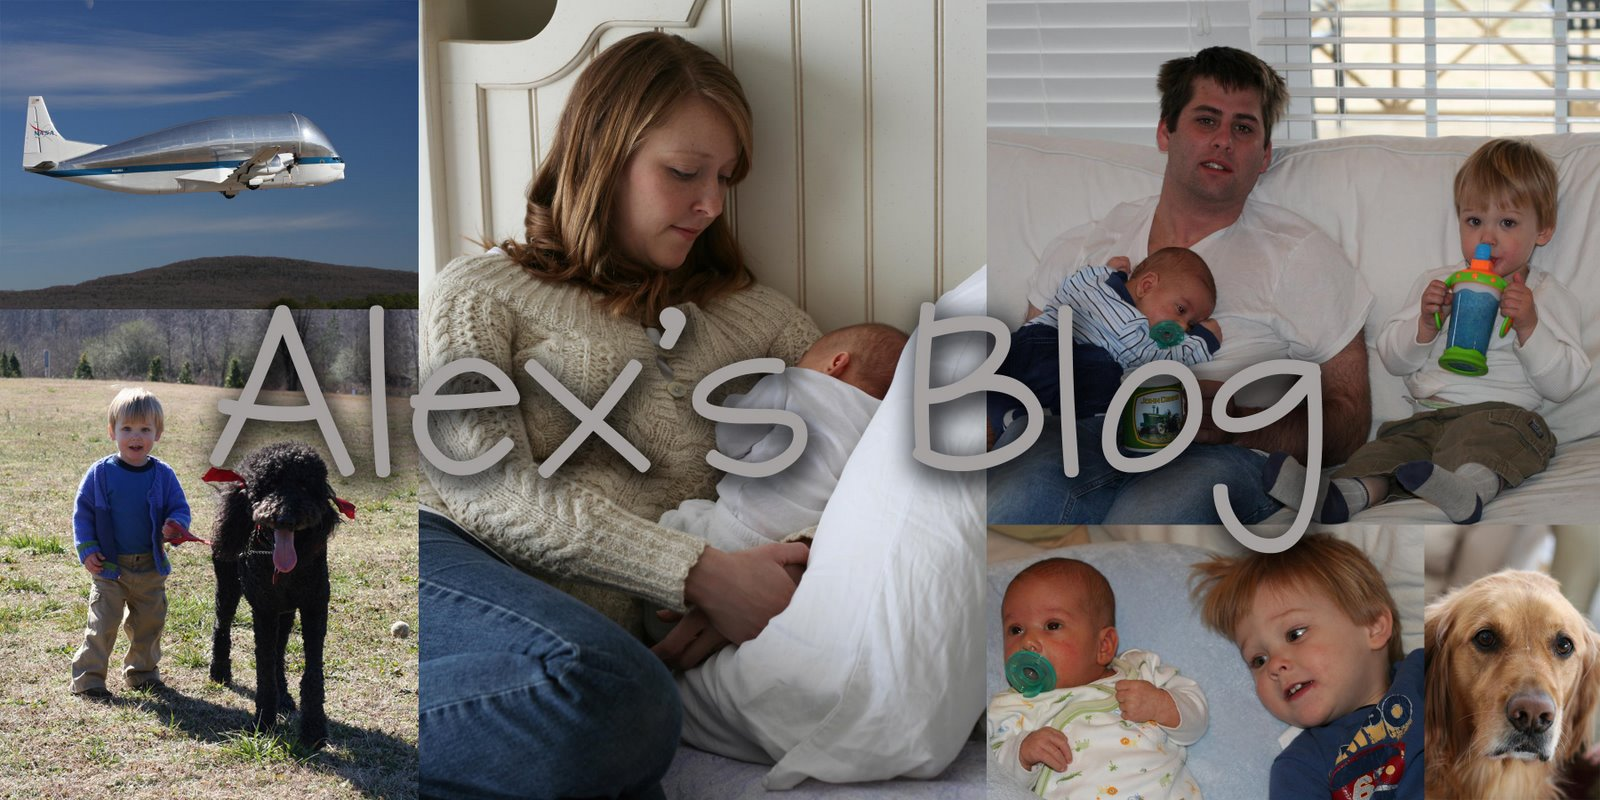 Alex & Lettie's Blog